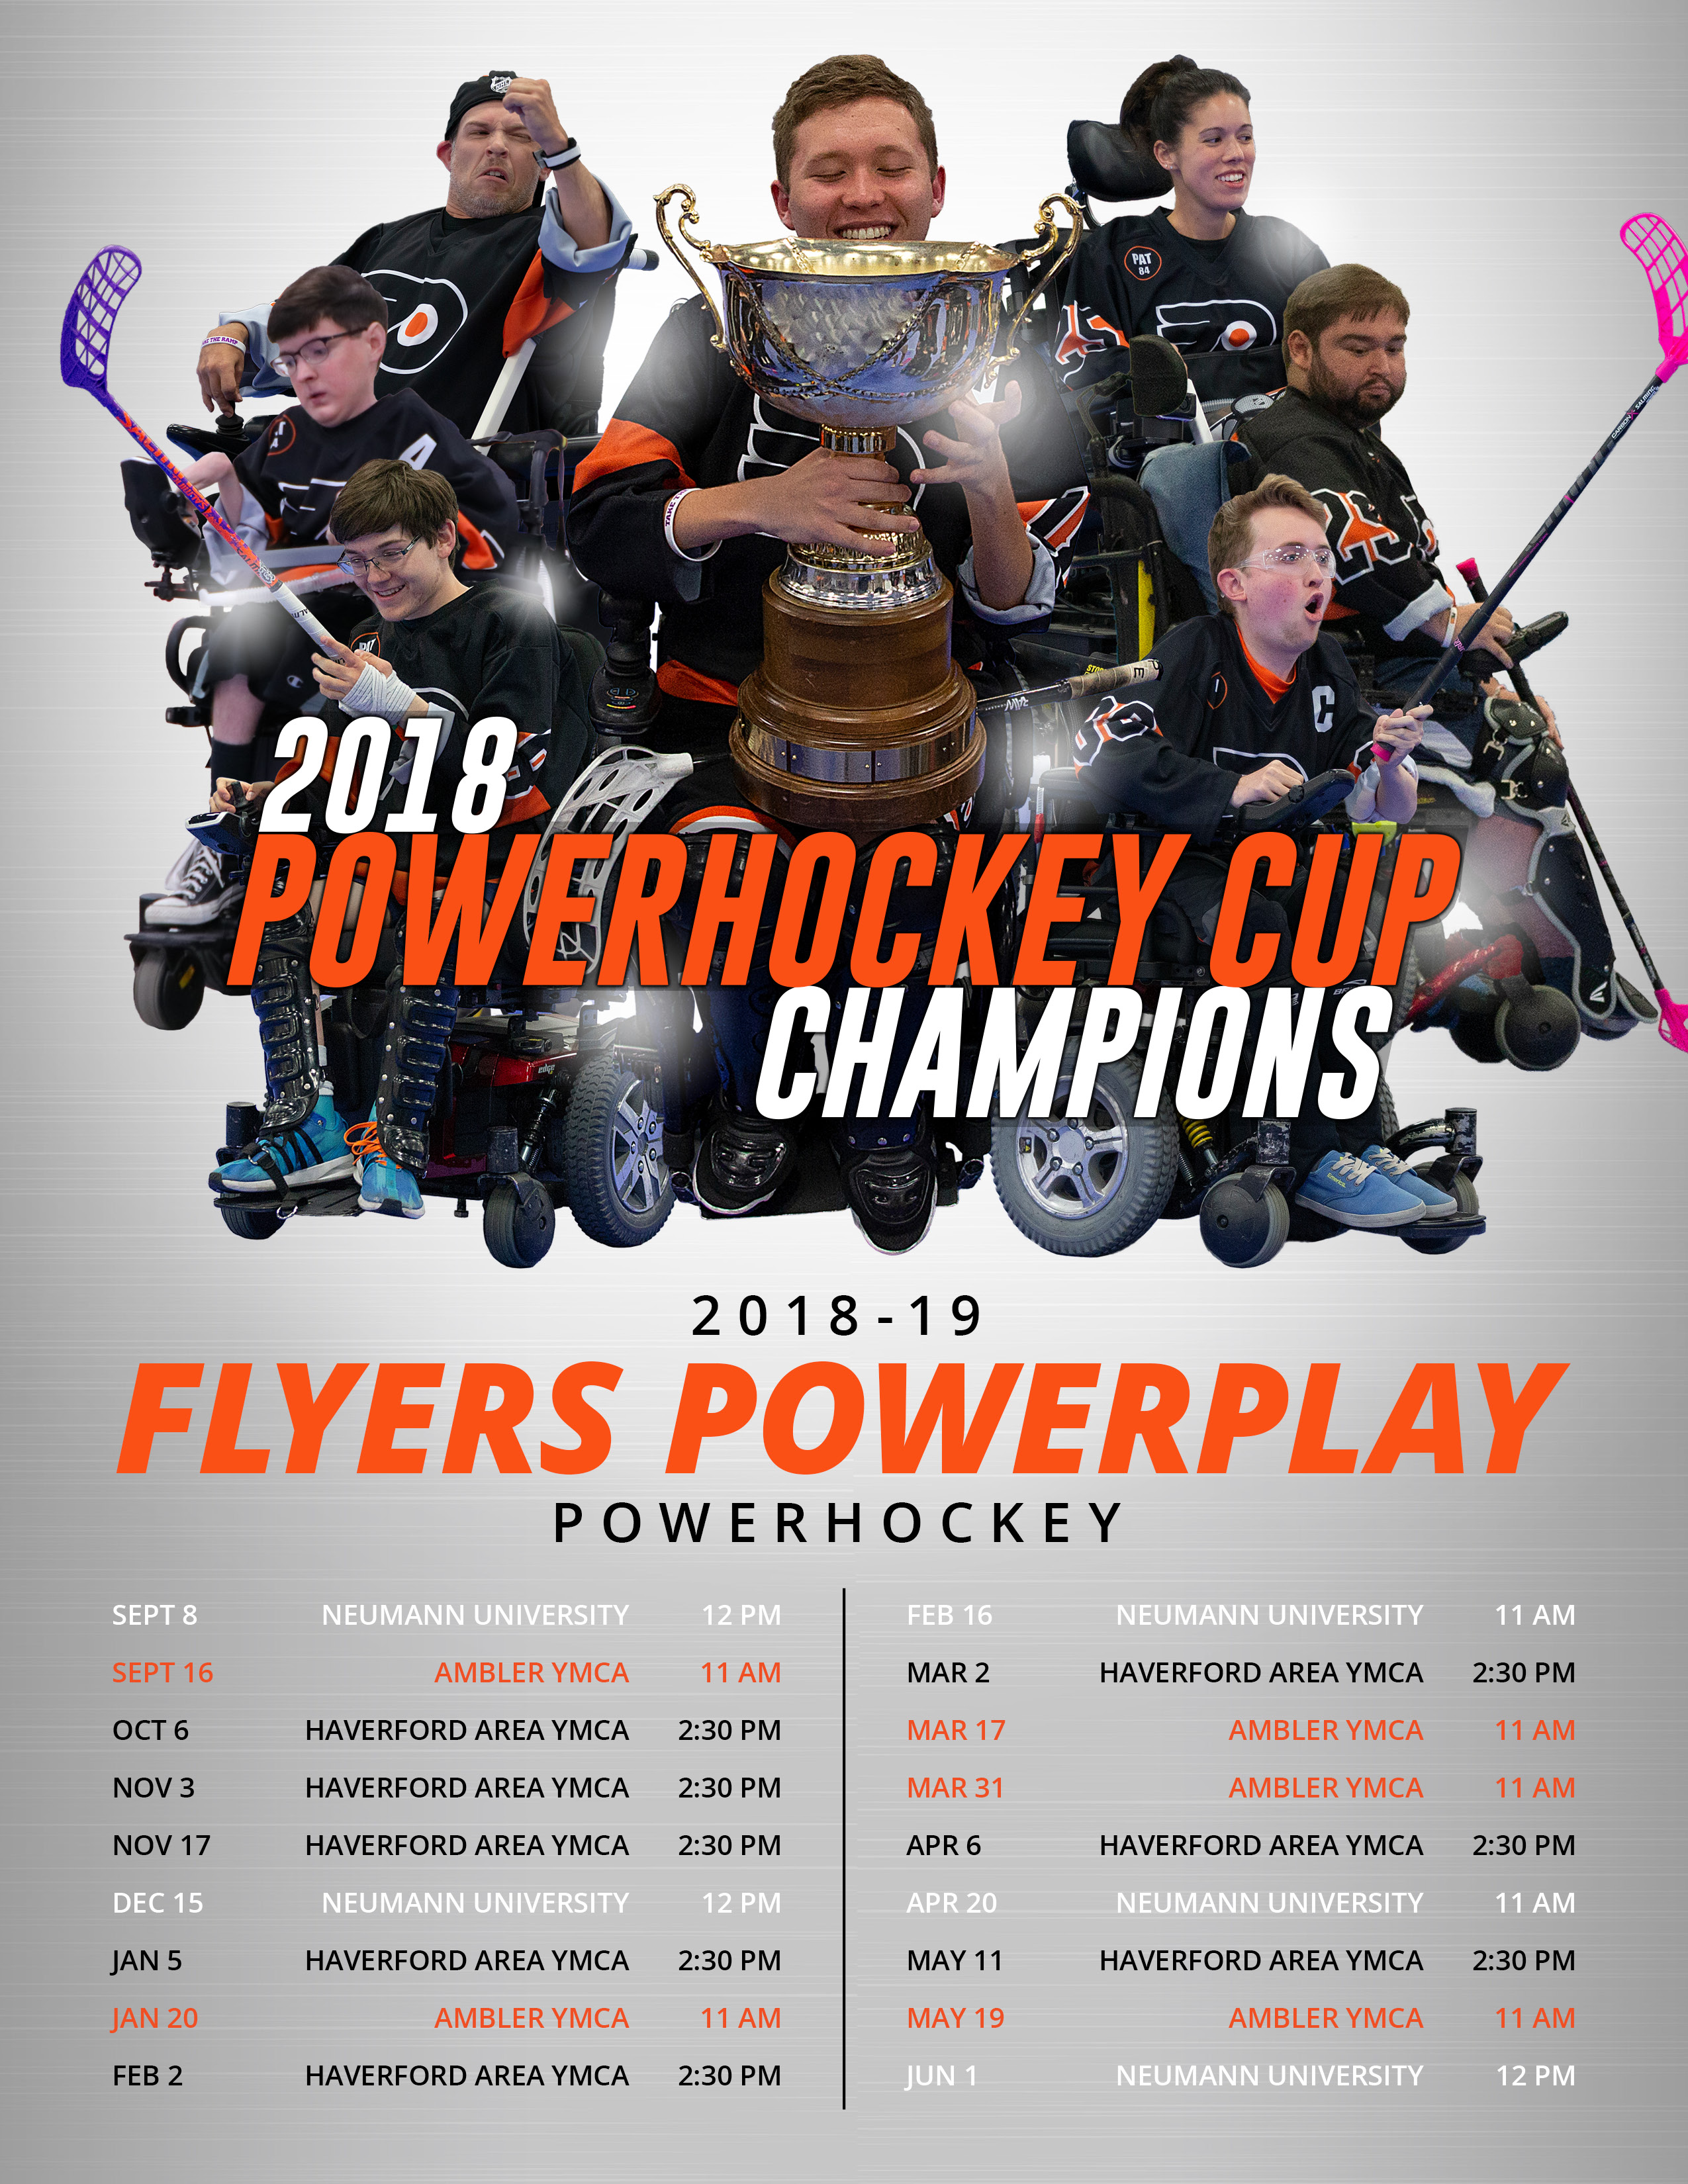 Flyers PowerPlay 2018-19 Schedule